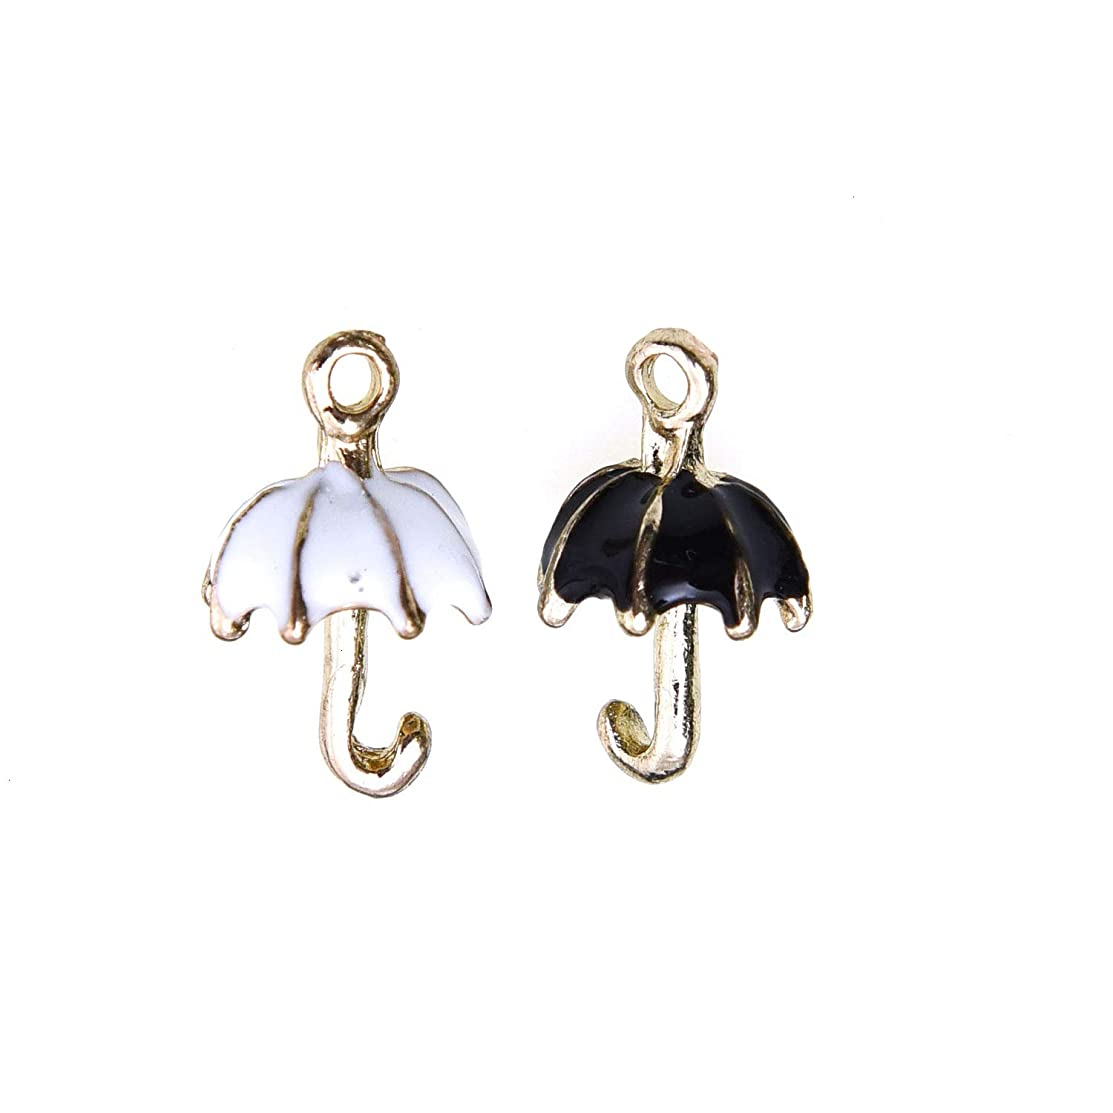 Monrocco 18PCS Metal Enamel Umbrella Charm Gold Plated Enamel Pendant Charms Jewelry Findings - Black and White, 20 x 10mm